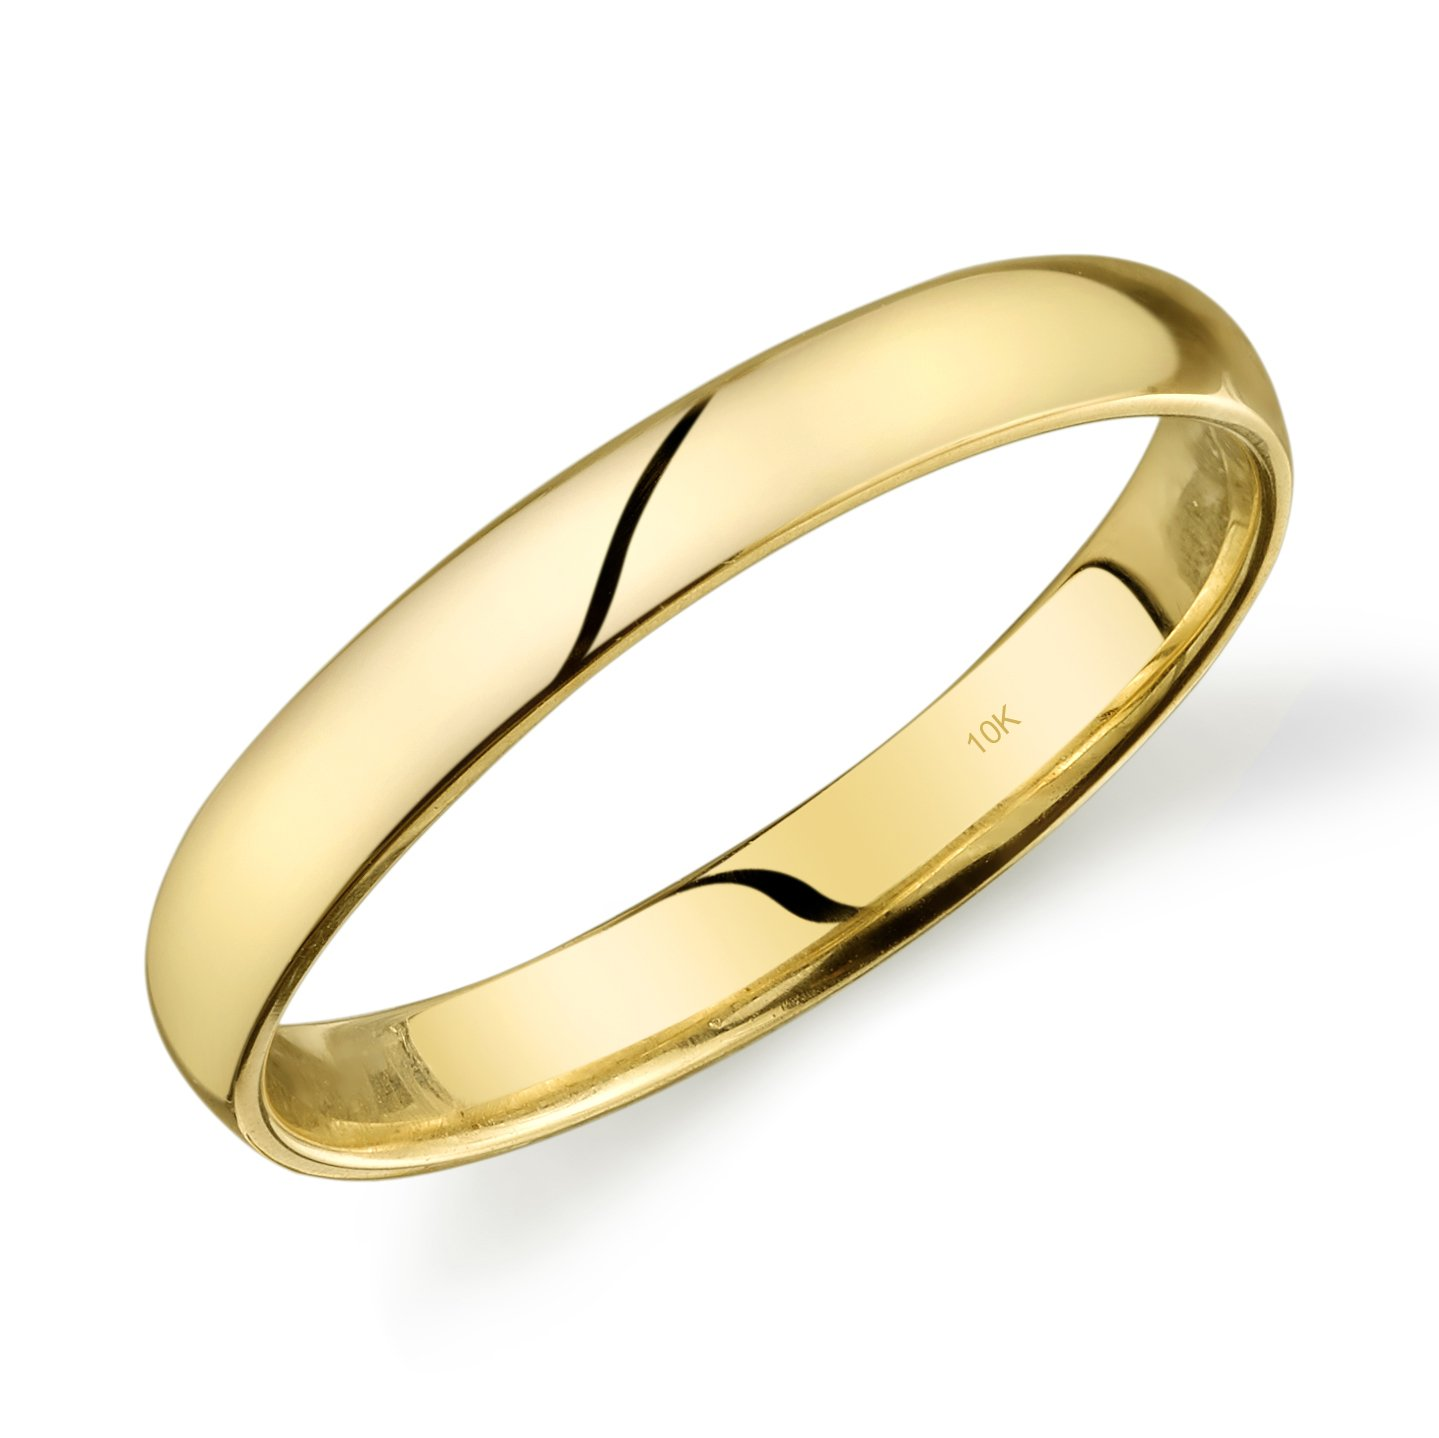 10k Yellow Gold Light Comfort Fit 3mm Wedding Band Size 6 by Tesori & Co